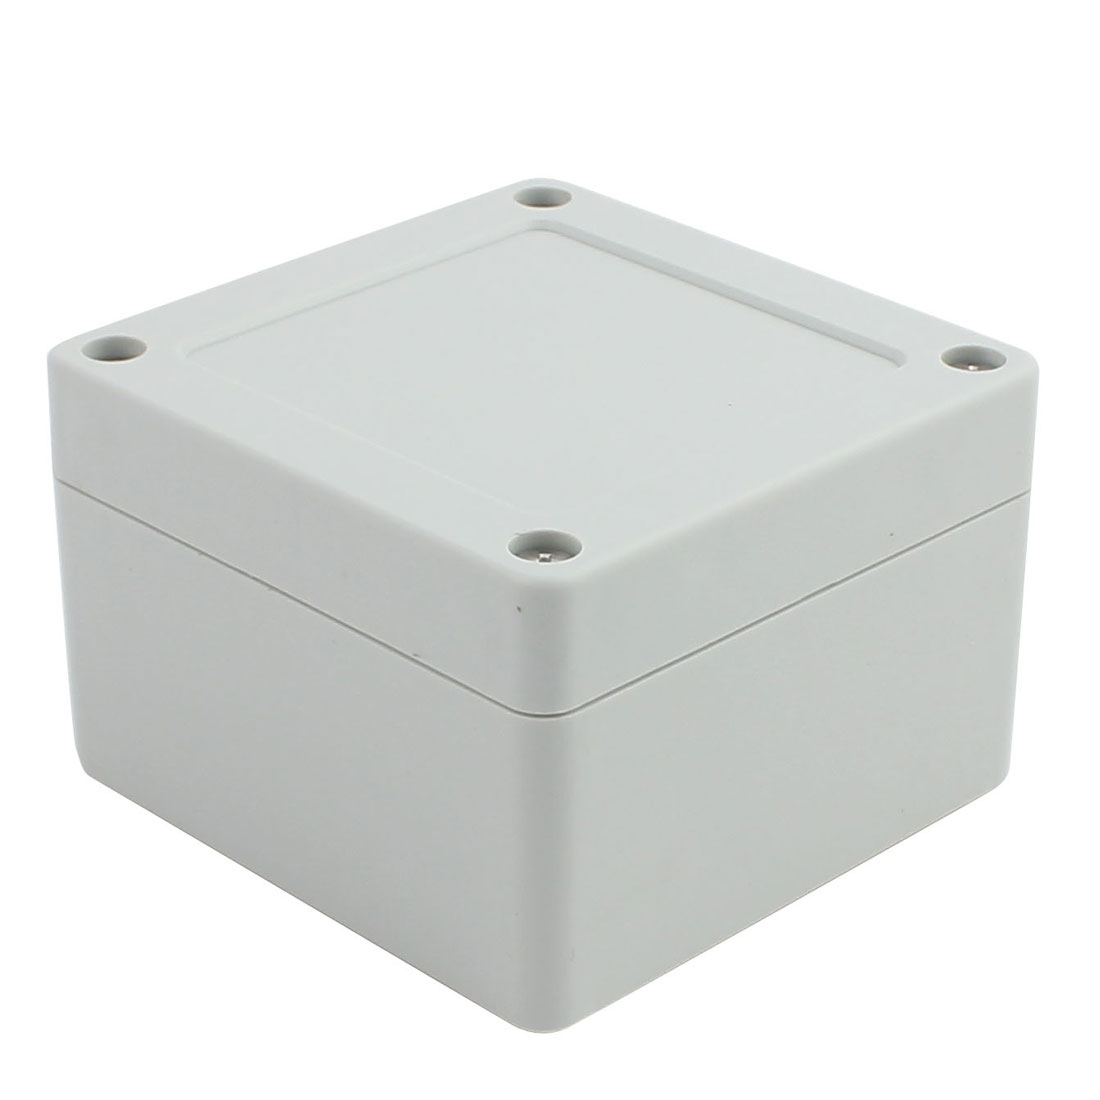 84mm x 82mm x 56mm ABS Enclosure DIY Junction Box Case Gray